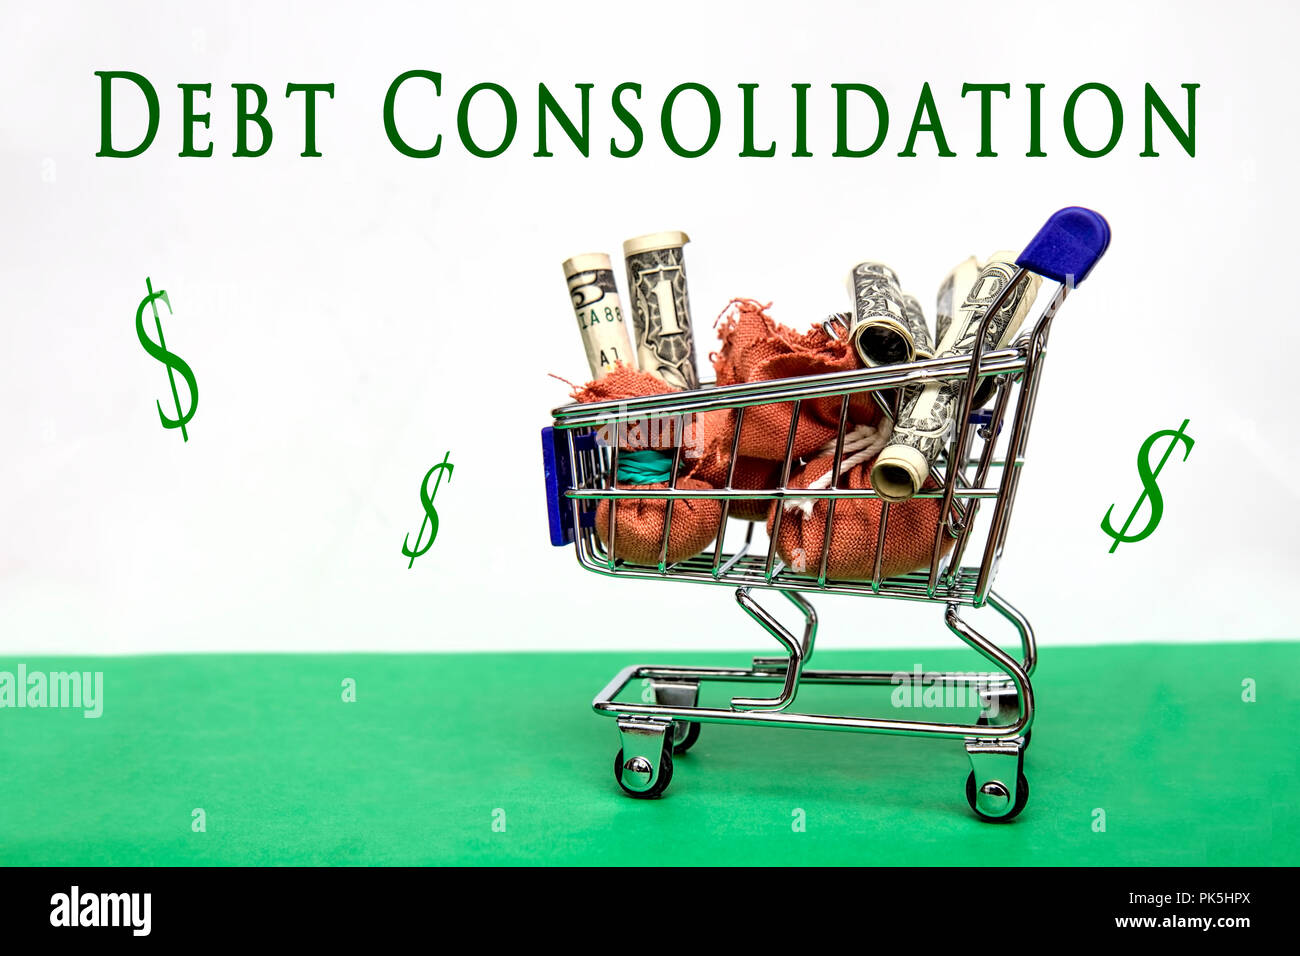 Shopping cart loads with bags of money.  Two images one with text Savings and Loans and the other Debt Consolidation.  Concept Image - Stock Image